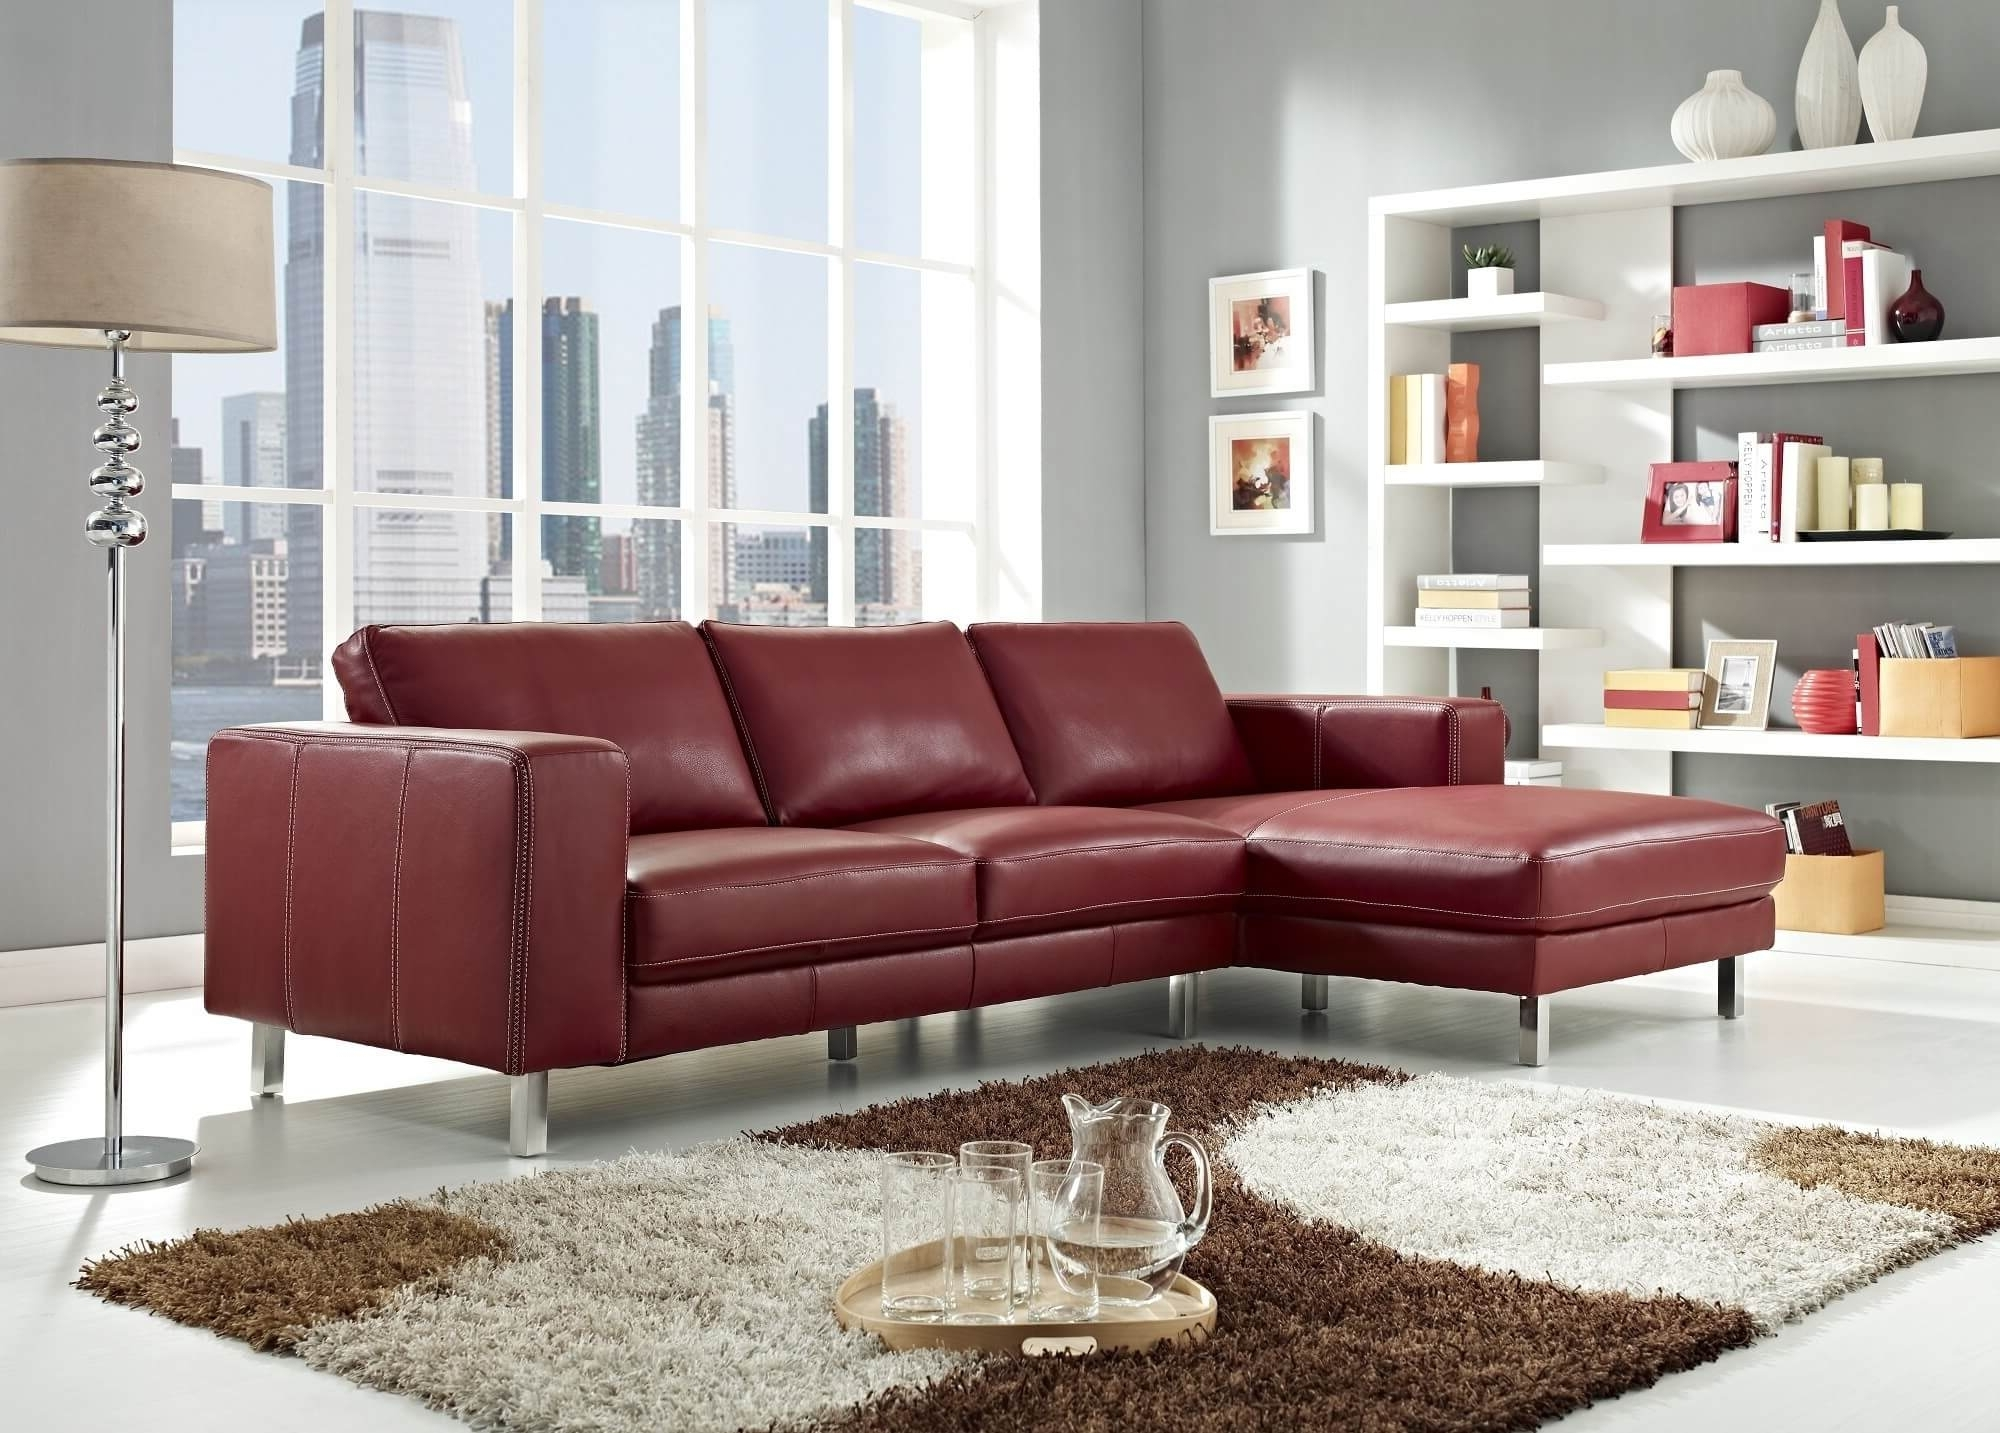 Elegant Sectional Sofas With Regard To Preferred Stylish Modern Red Sectional Sofas (View 7 of 15)